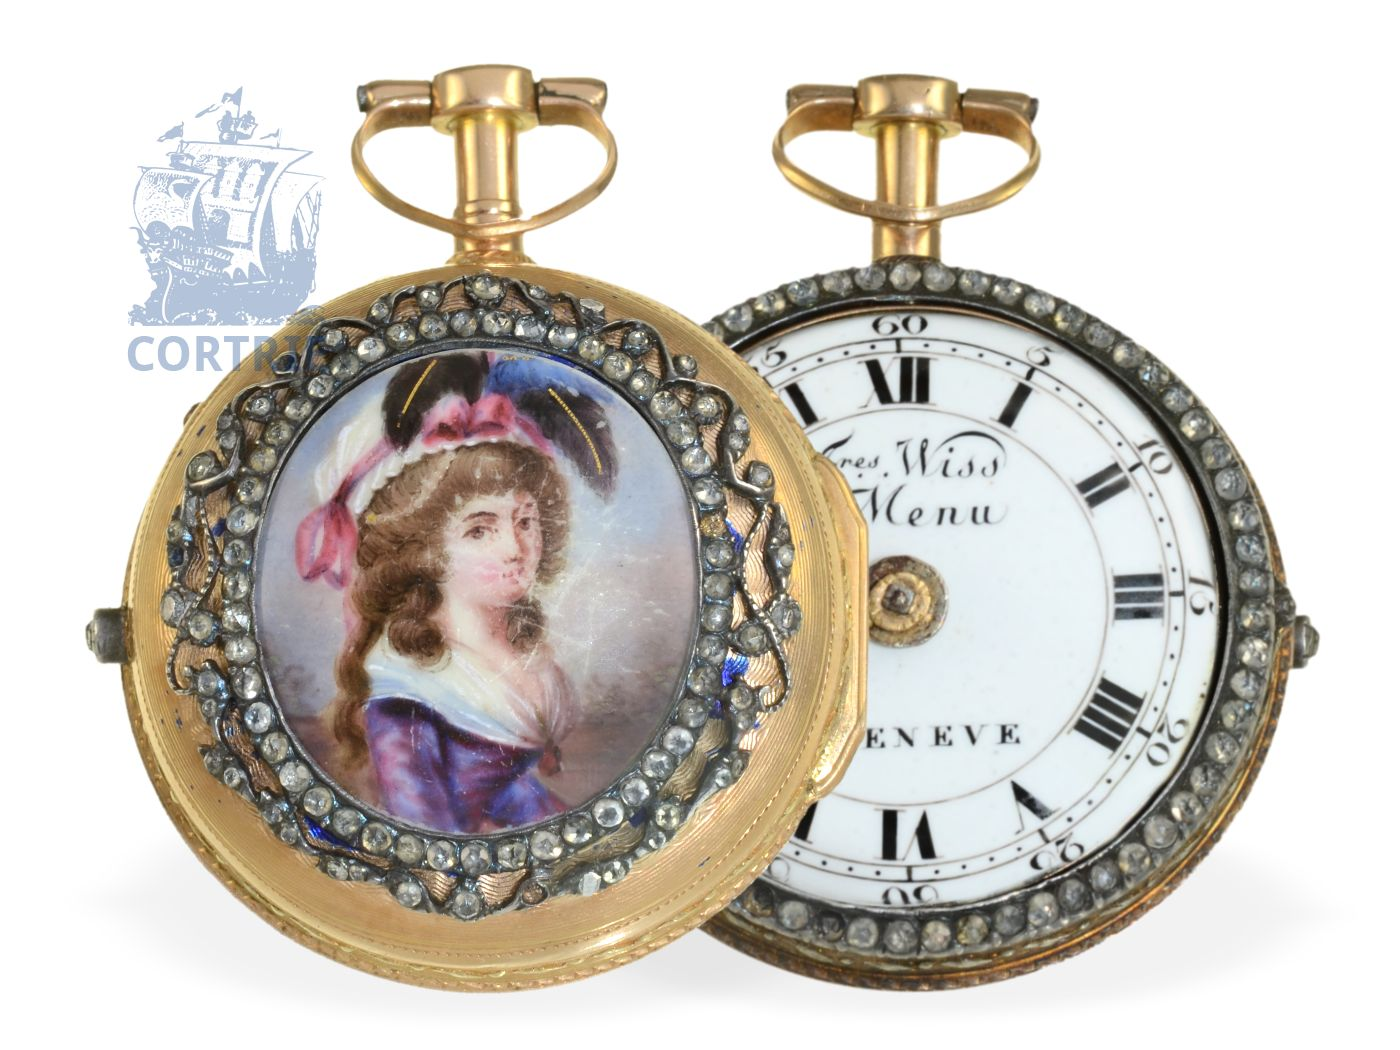 Pocket watch: rare paircase verge watch with enamel painting and jewels, Freres Wiss & Menu a Geneve ca. 1770-